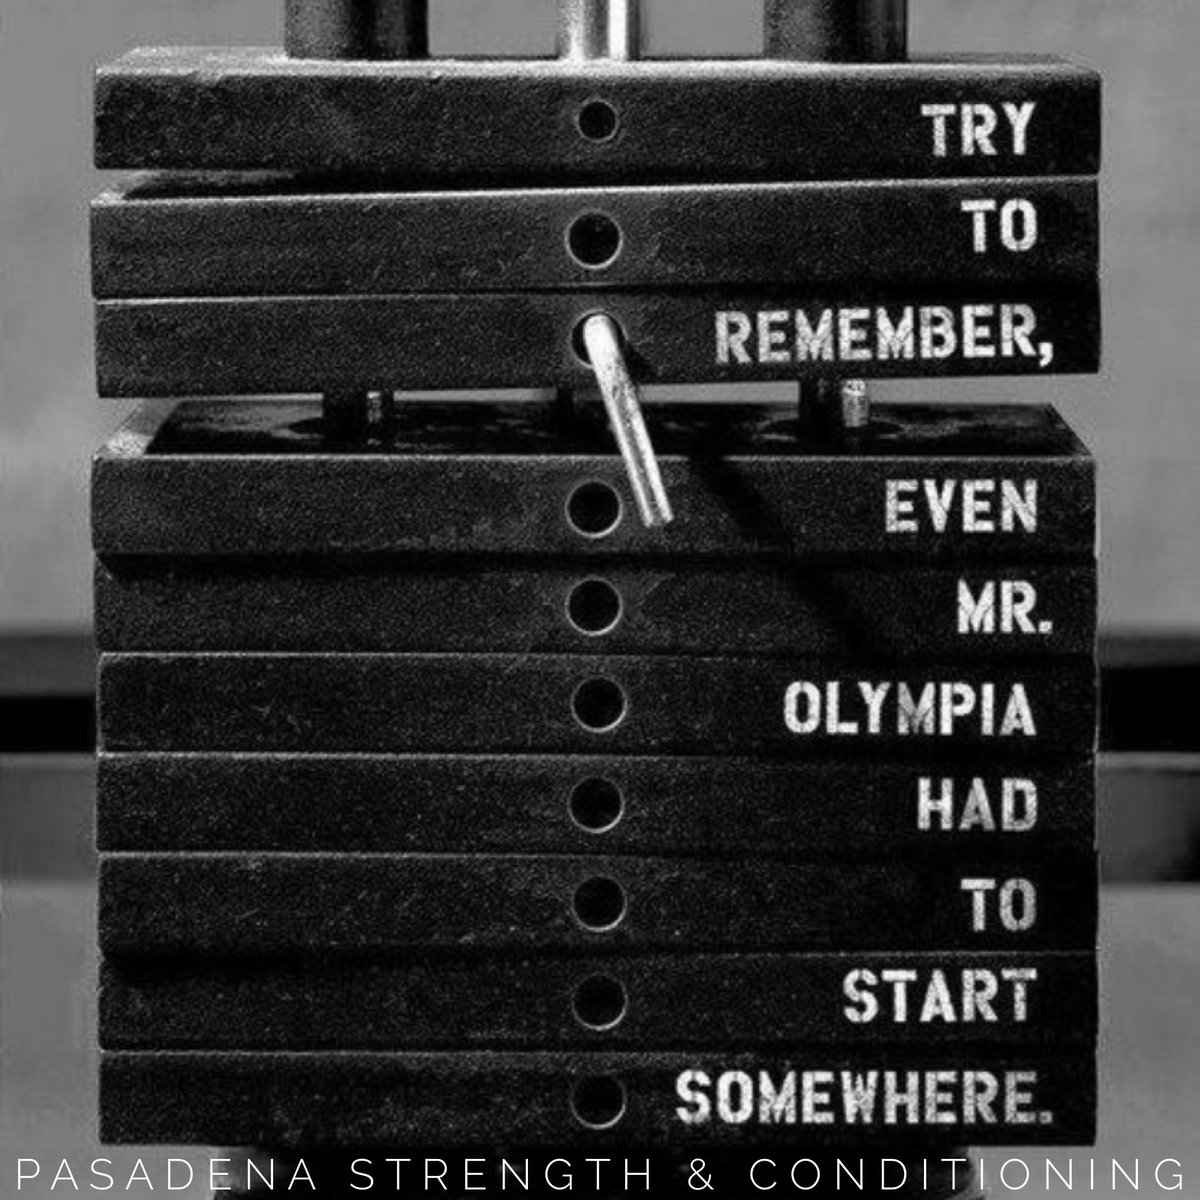 TRY TO REMEMBER, EVEN MR. OLYMPIA HAD TO START SOMEWHERE. . . . . #fitness #gymlife #privatetraining #privategym #gymrentals #workout #personaltrainer #fitlife #fitfam #gymtime #lifting #exercise #weights #bodybuilding #muscles #beastmode #fitnessmotivation #functionaltraining<br>http://pic.twitter.com/kGazxMzTxH